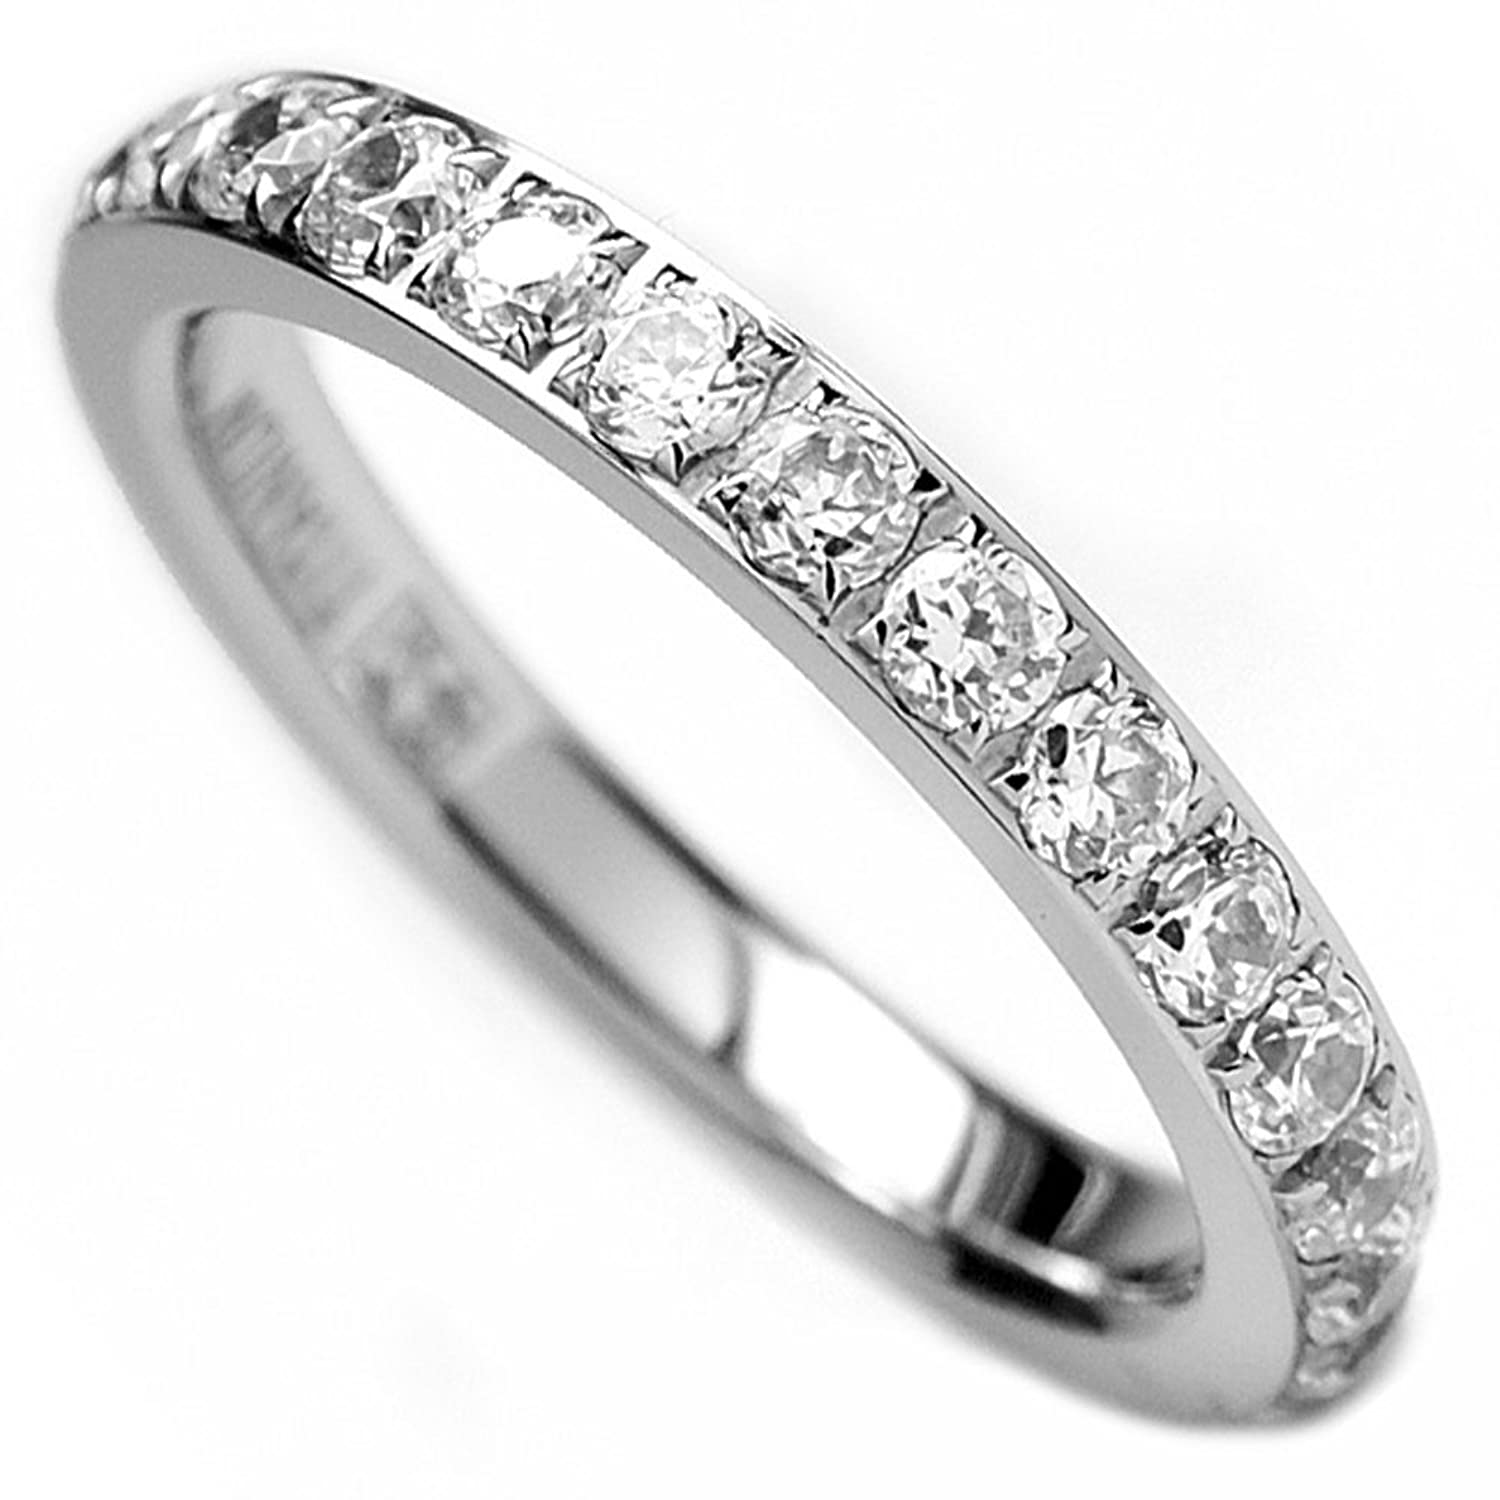 princess silver milgrain dp eternity zirconia ring cubic bands sterling cut amazon cz jewelry band com